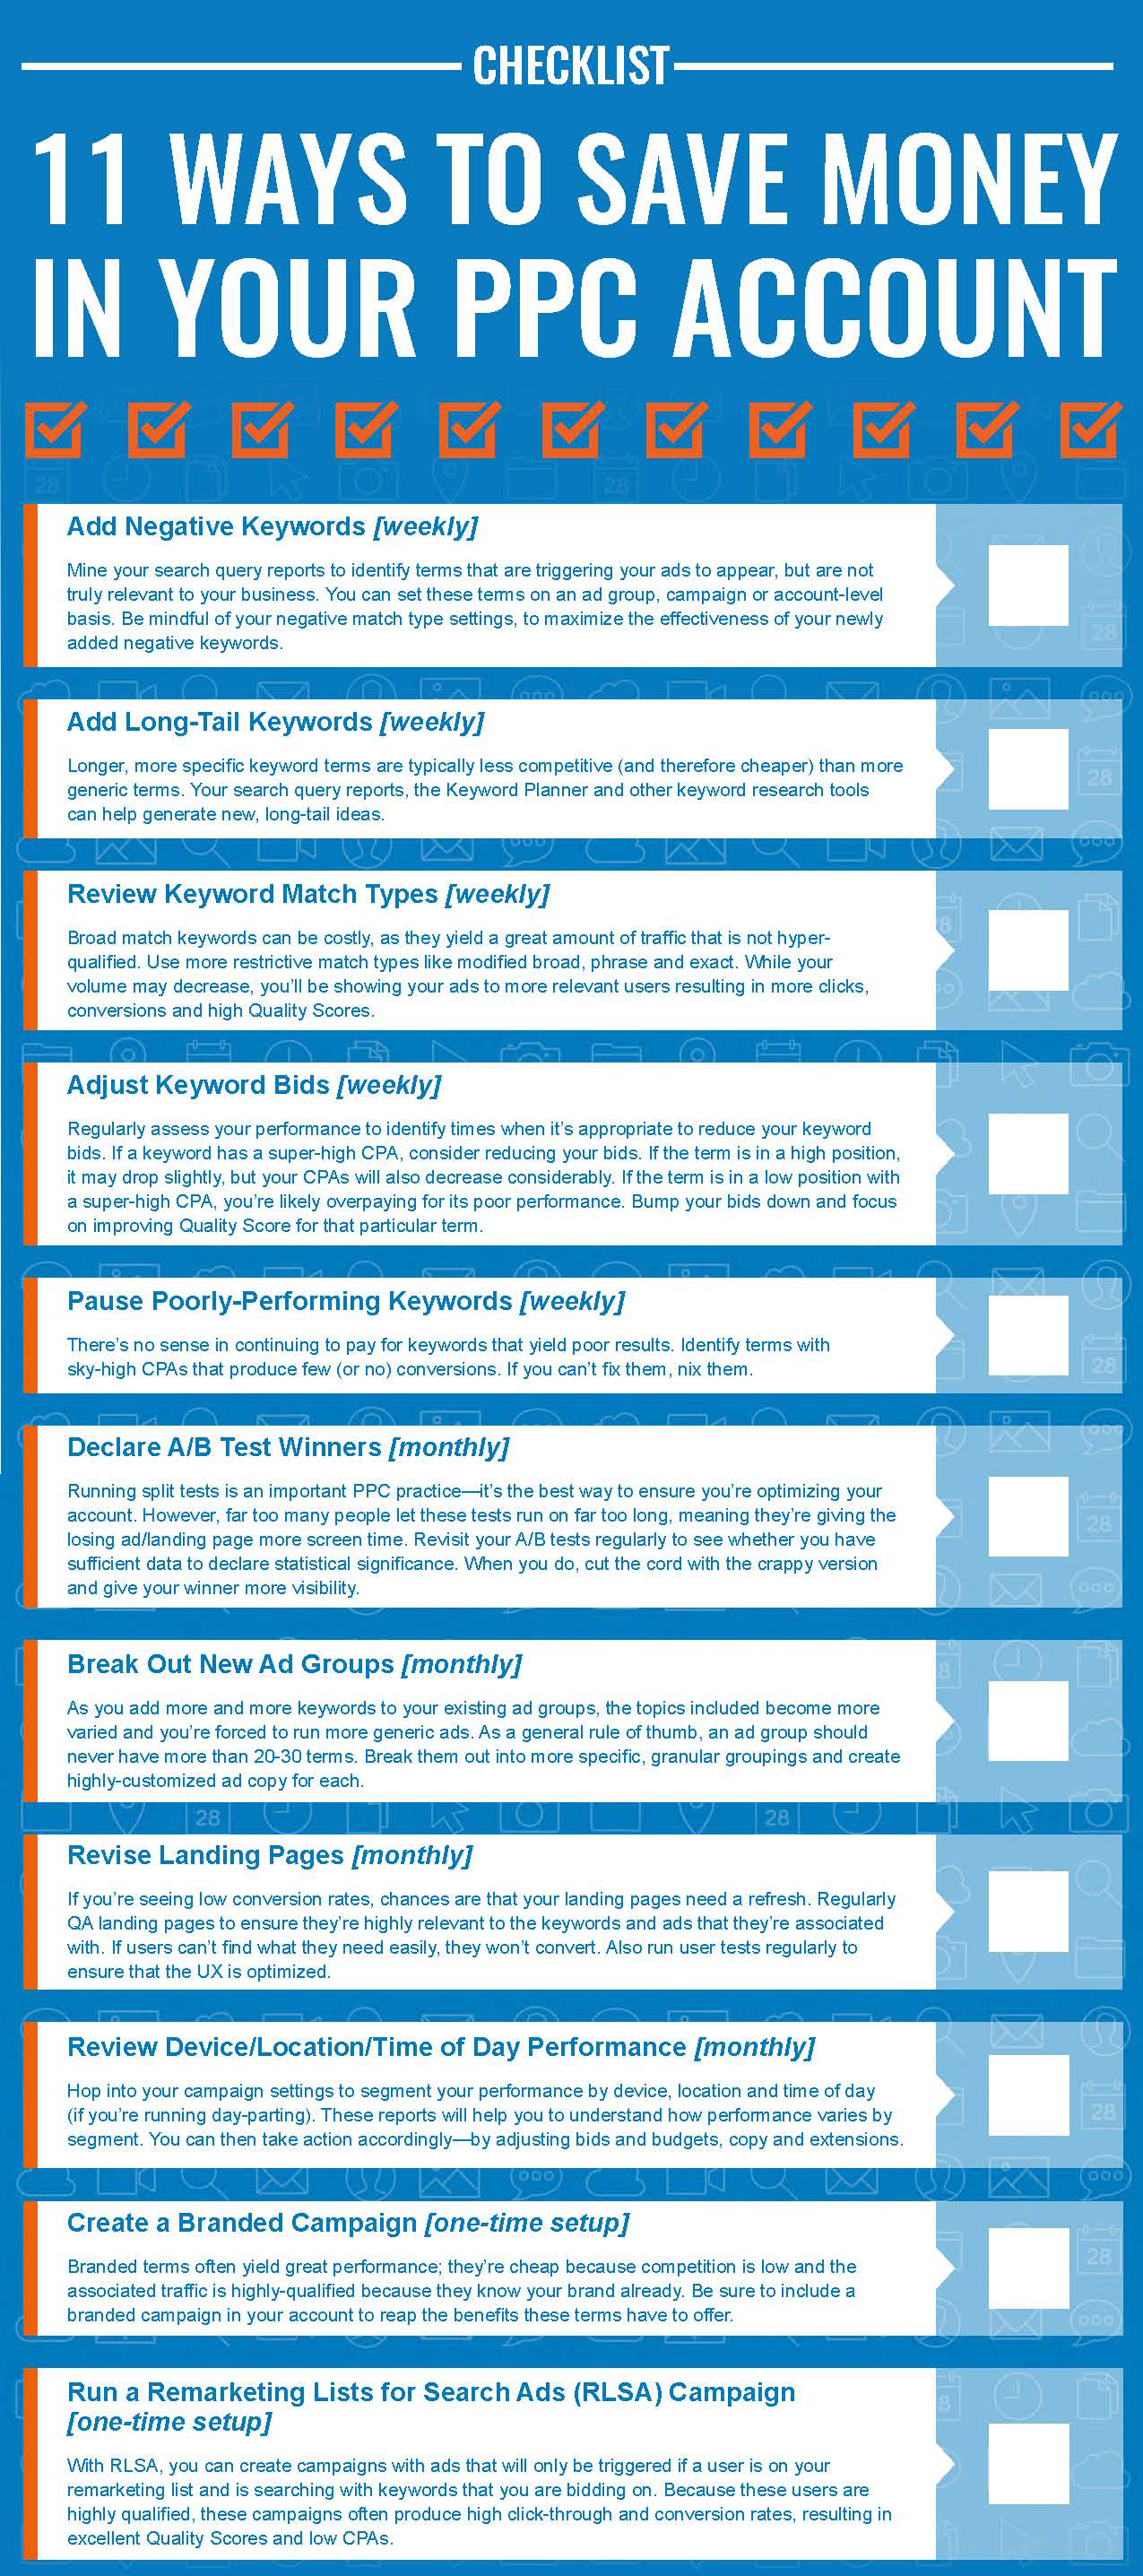 money saving checklist